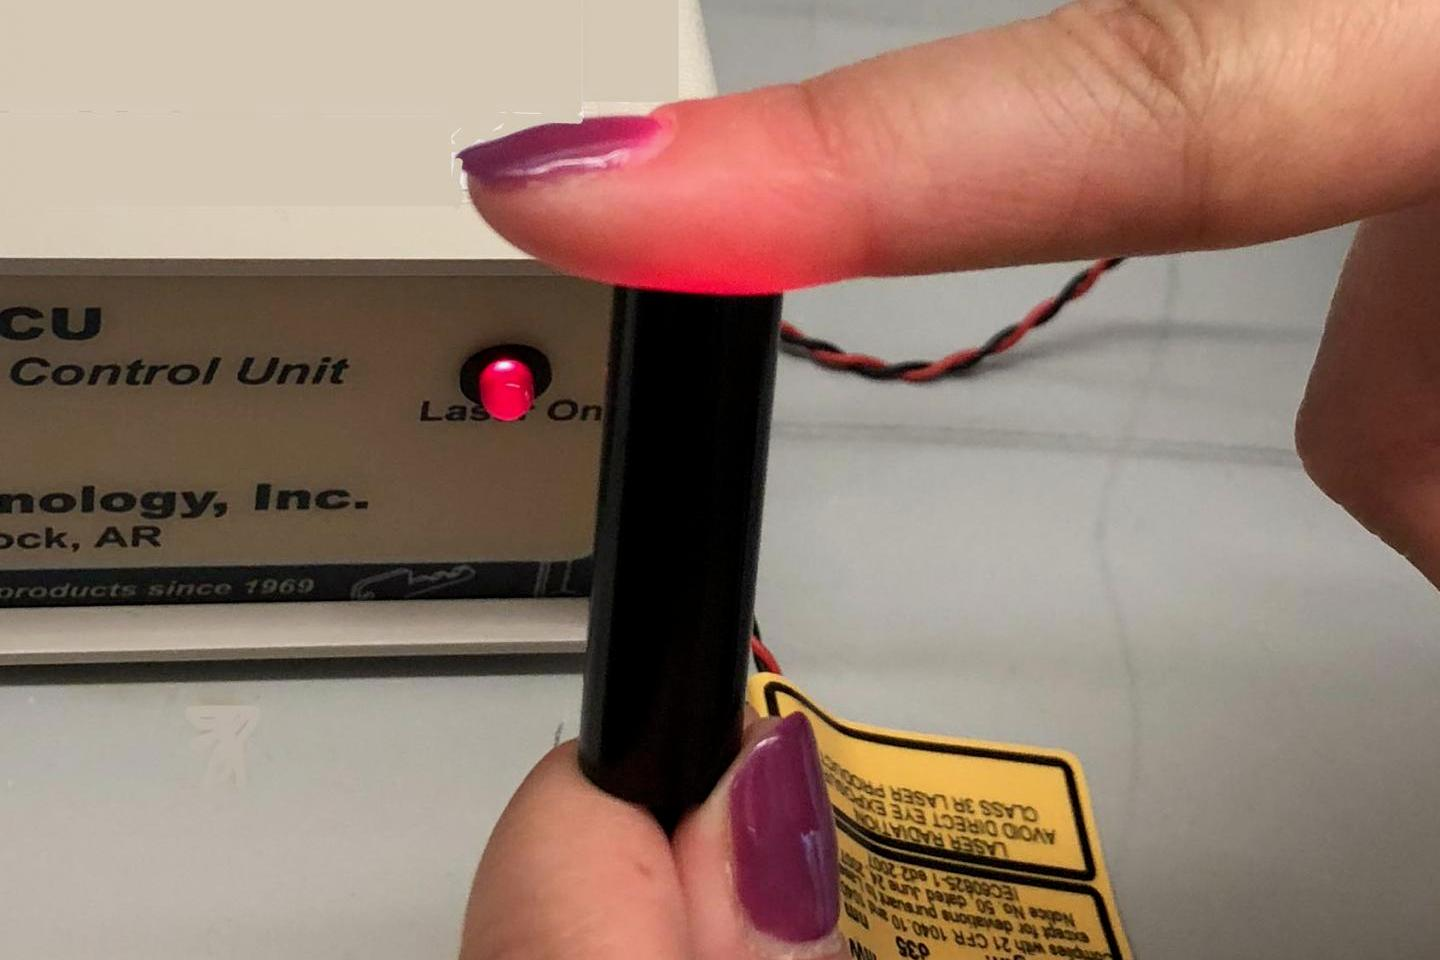 A demonstration of the low-power laser utilized in the study